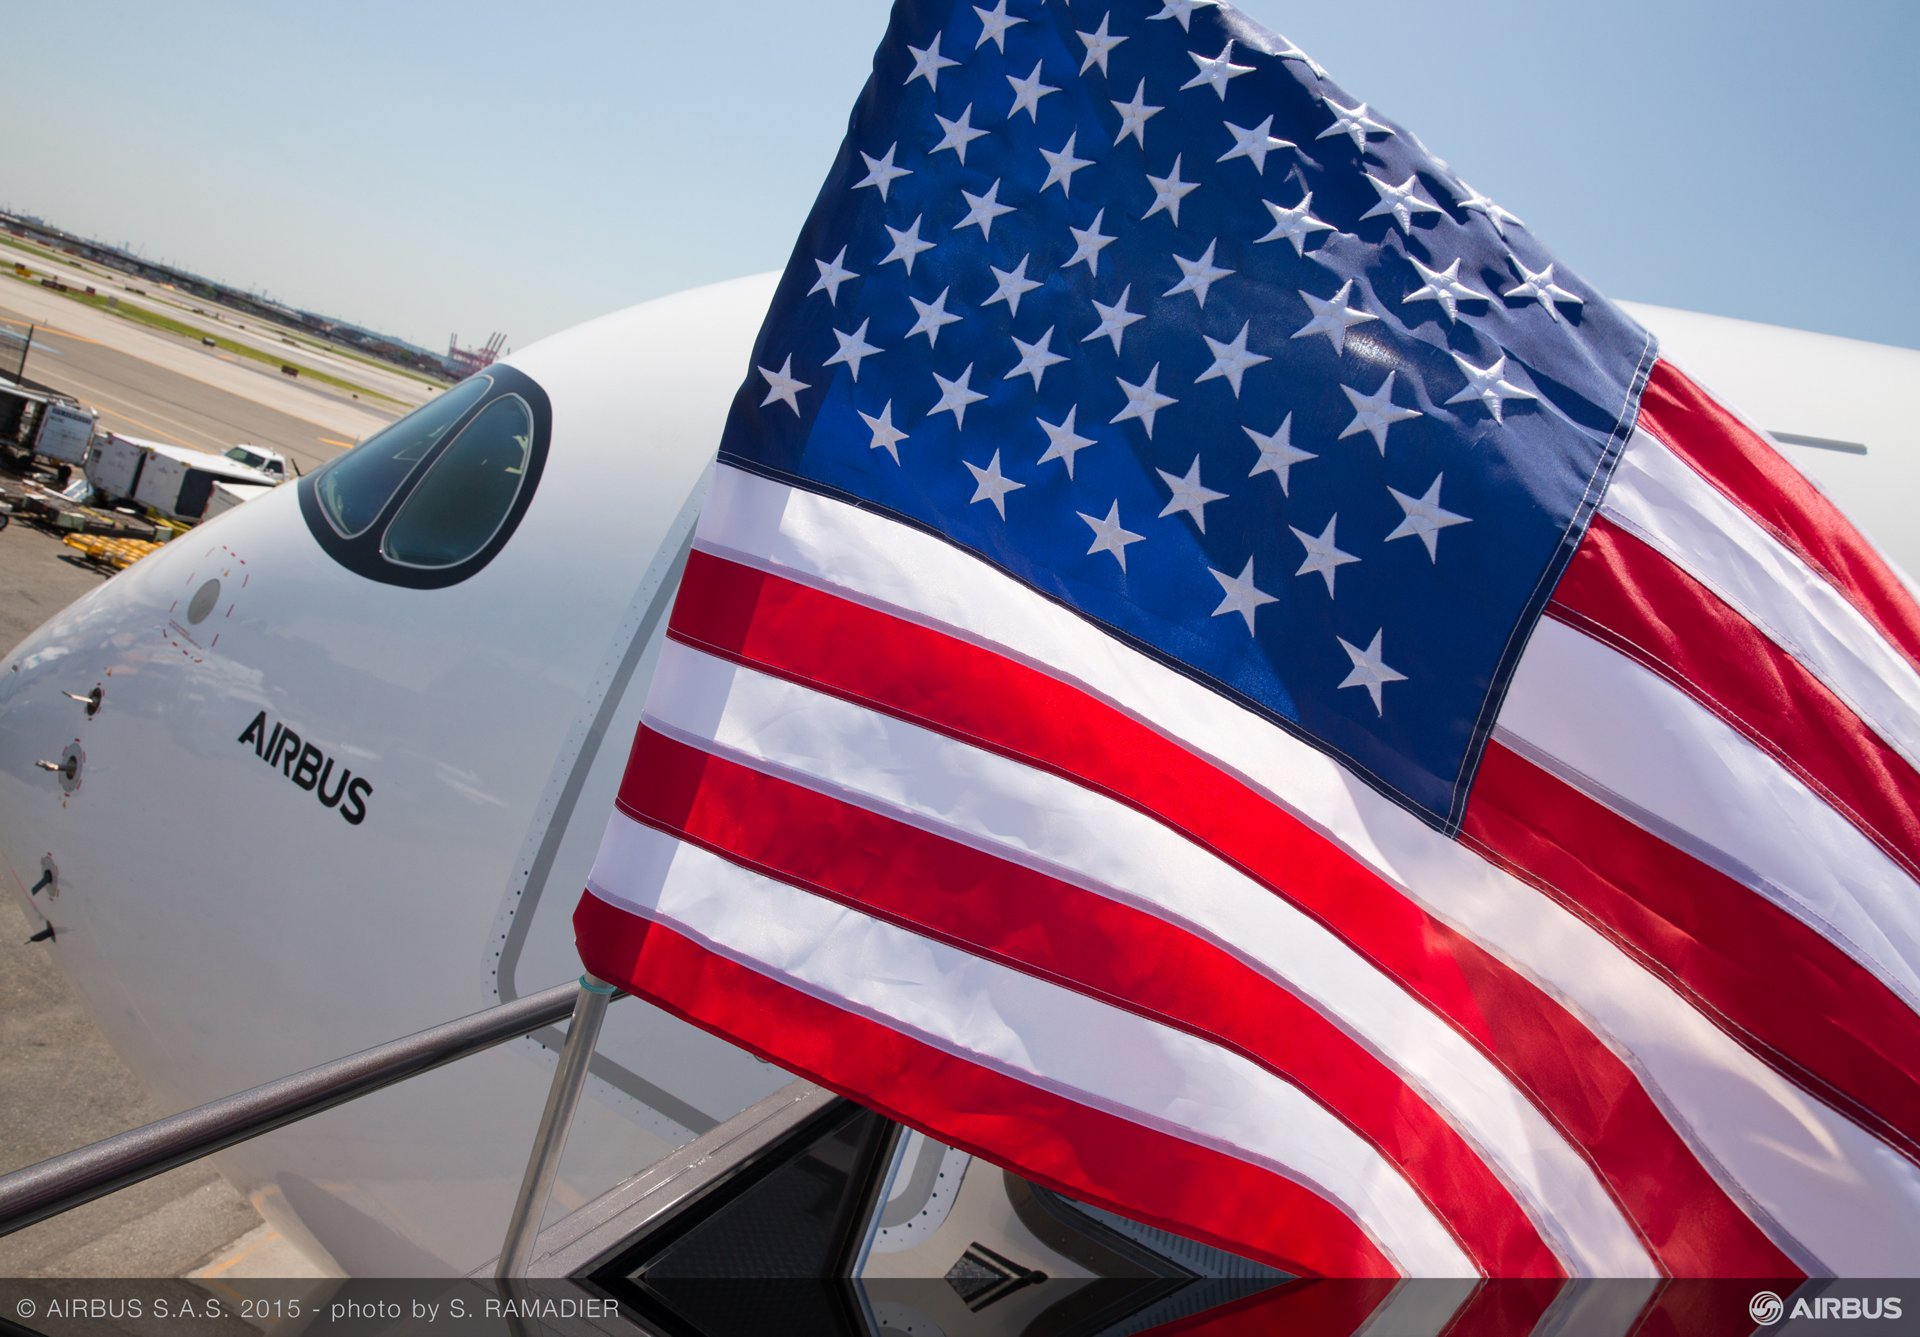 Airbus in the U.S.